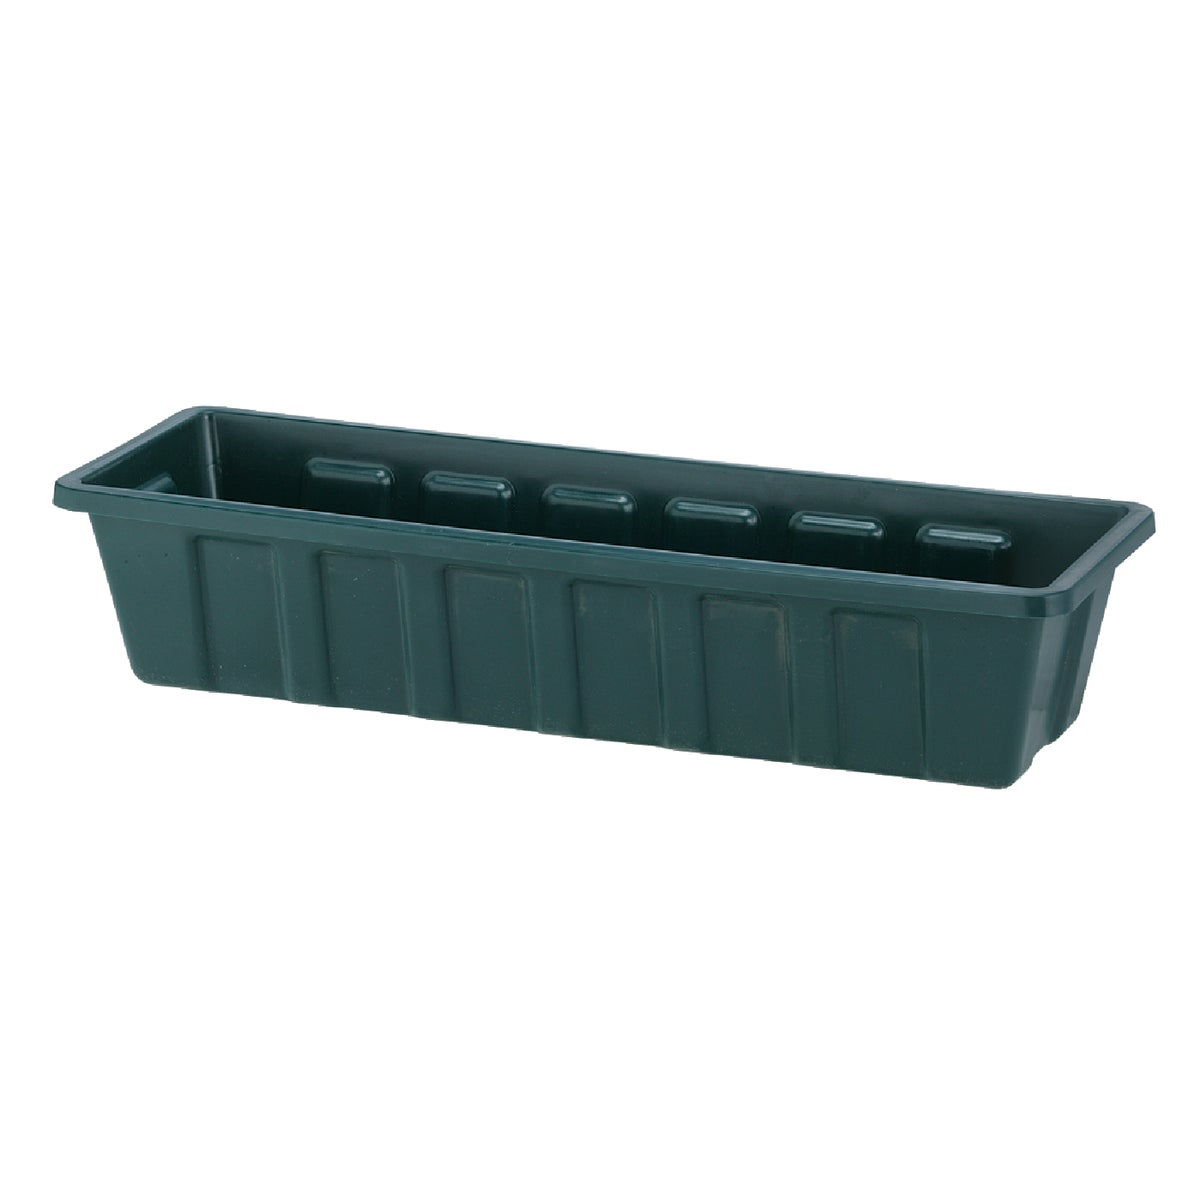 "24"" FLOWER BOX PLANTER - 02241 by Novelty Mfg Co"